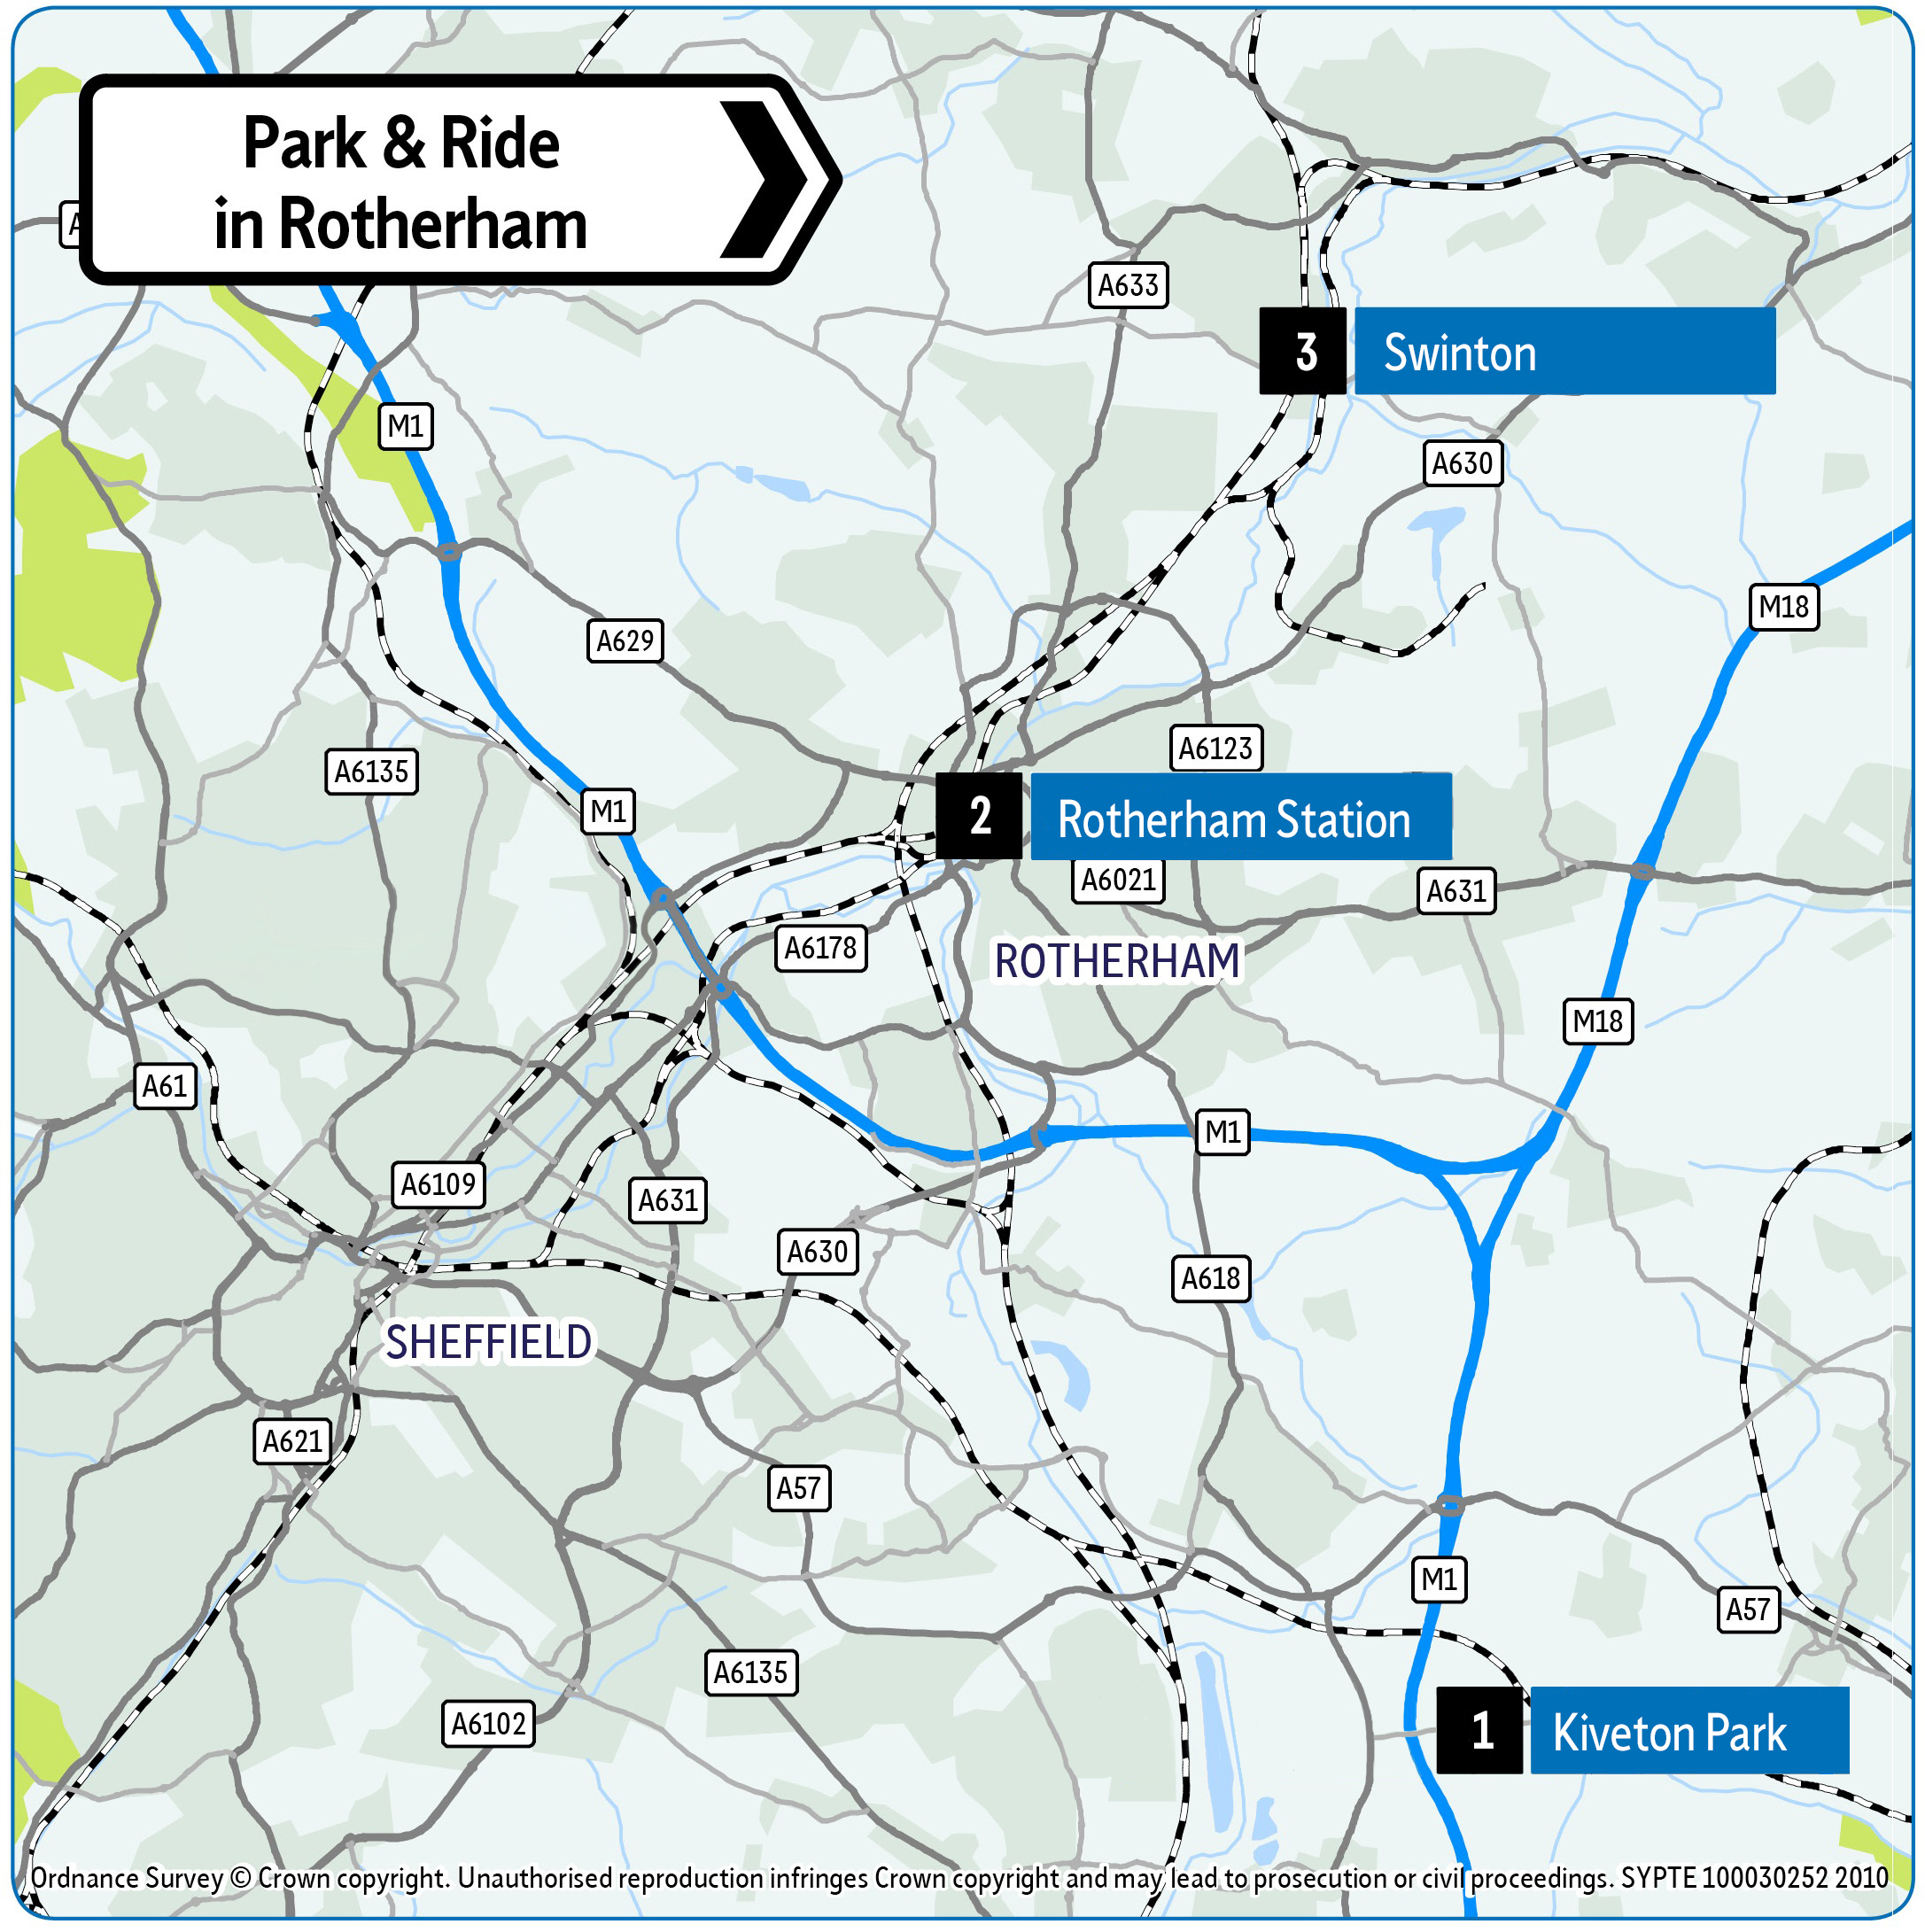 Rotherham Park and Ride location map